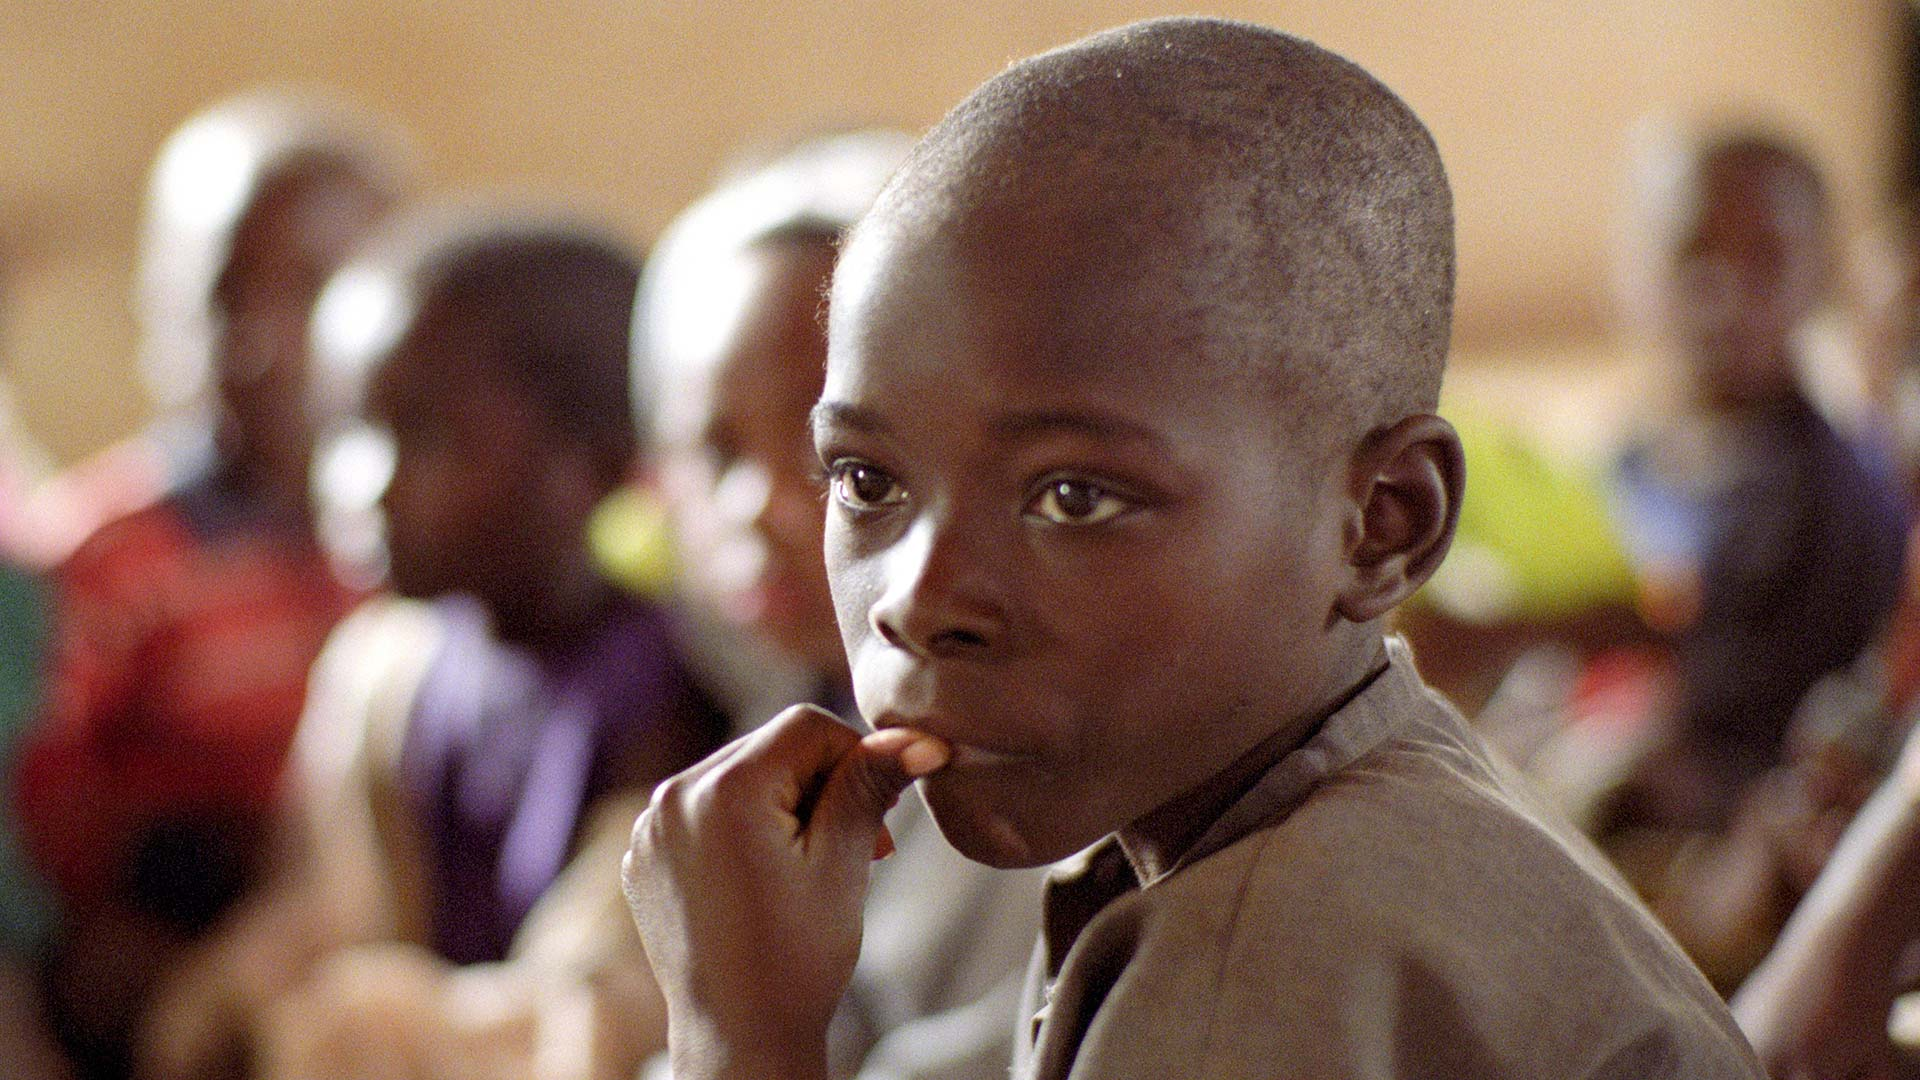 Focused Malawian child in classroom